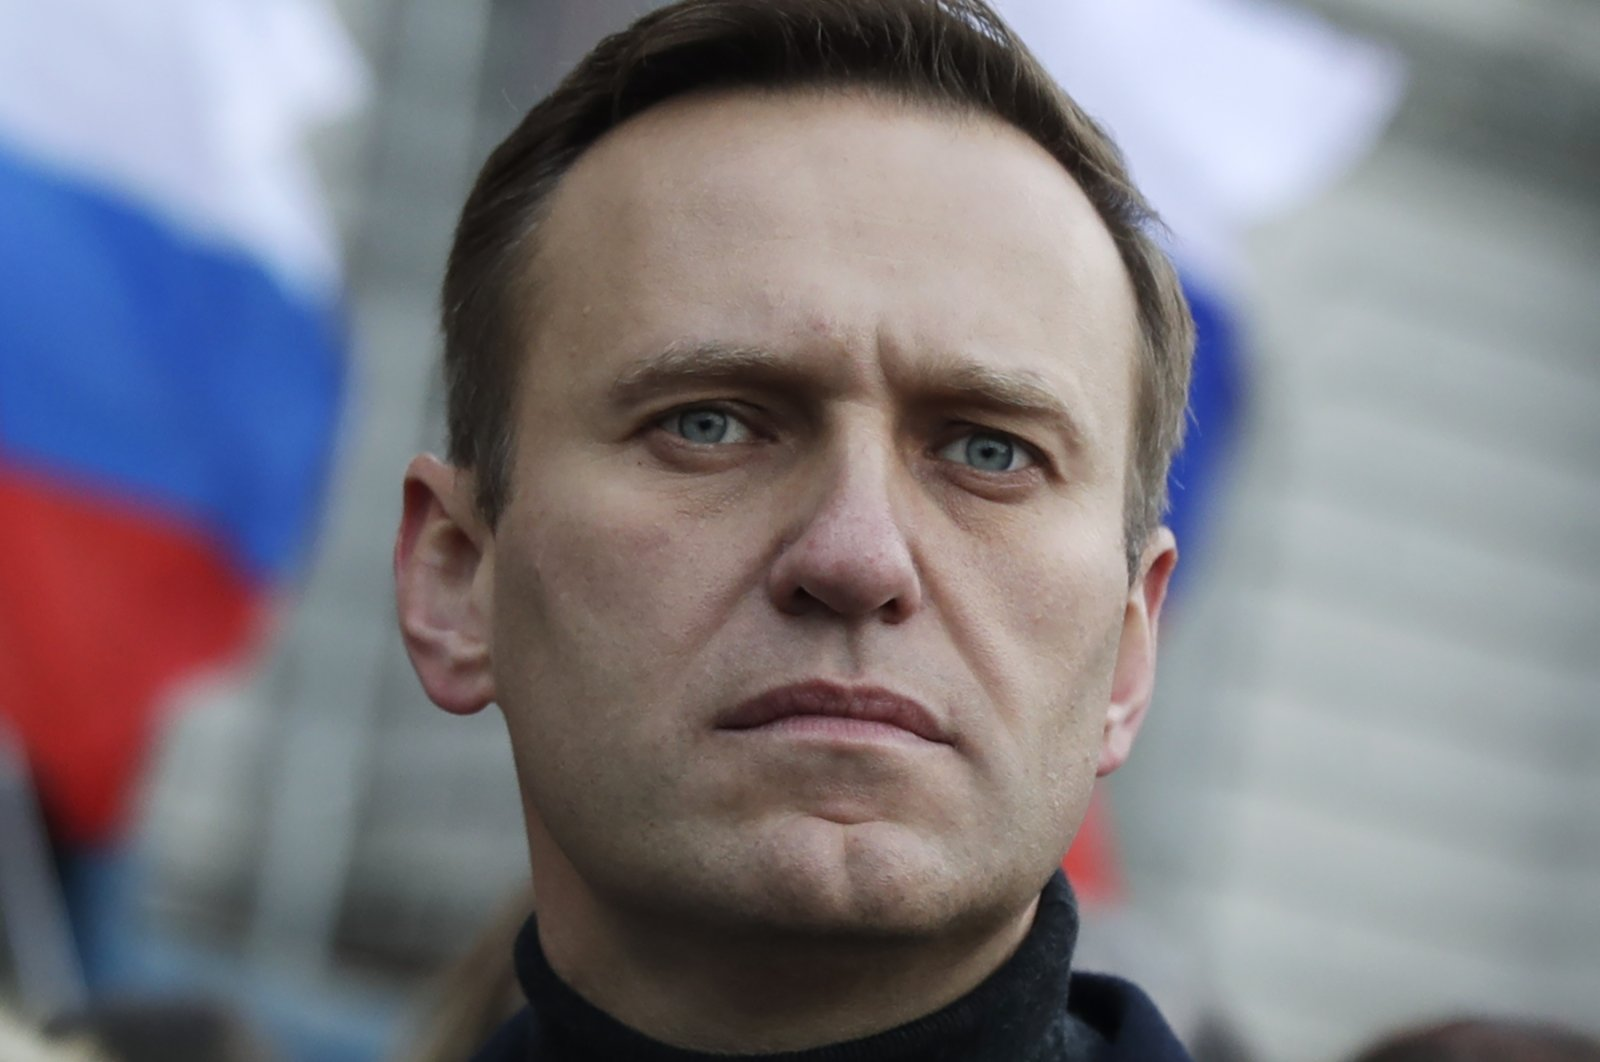 Russian opposition activist Alexei Navalny takes part in a march in memory of opposition leader Boris Nemtsov in Moscow, Russia, Feb. 29, 2020. (AP Photo)